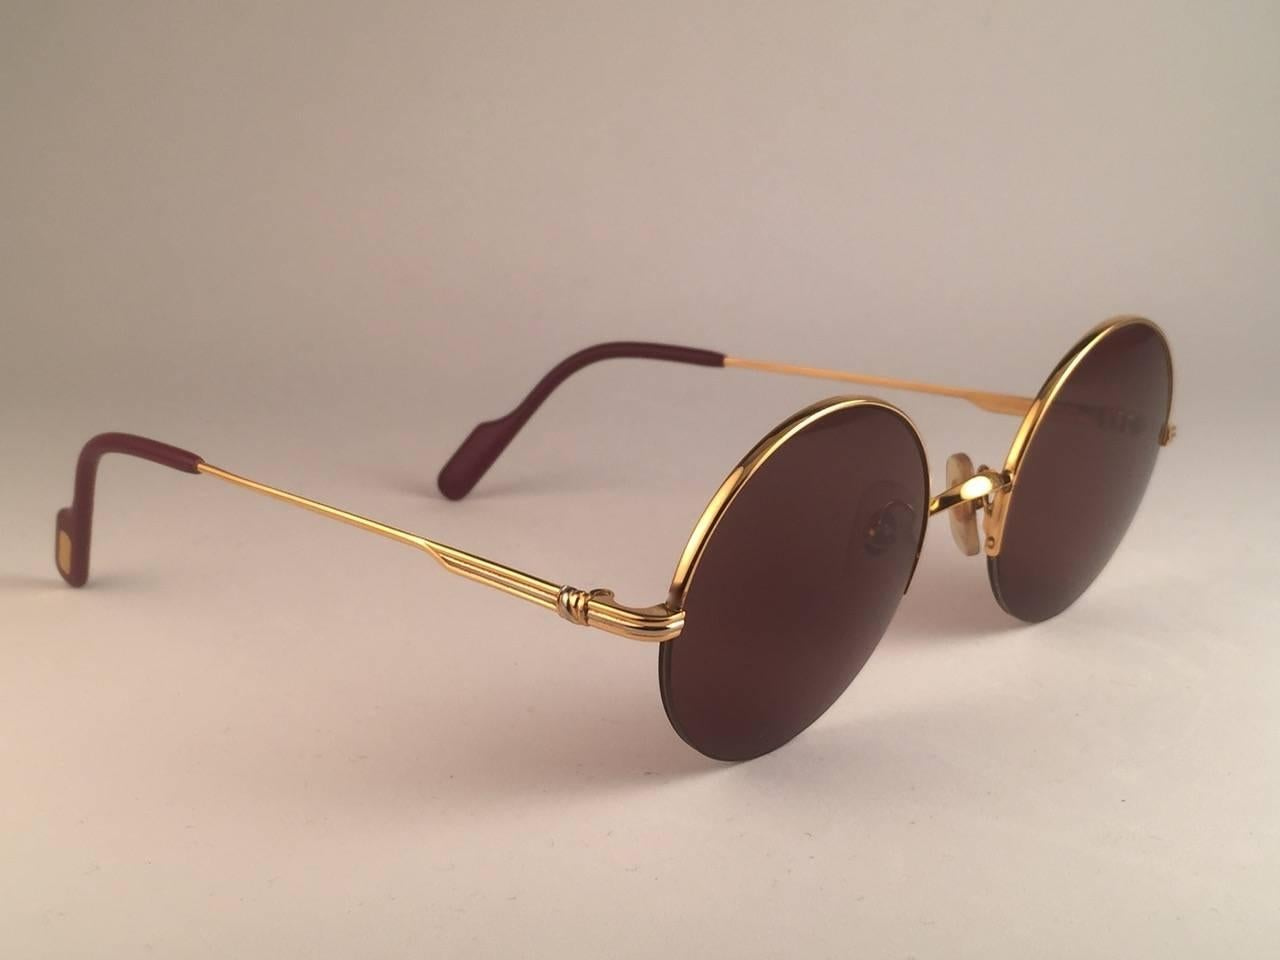 f5847ac91c33 New Cartier Mayfair Round Half Frame Gold 47mm Brown Lens France Sunglasses  at 1stdibs